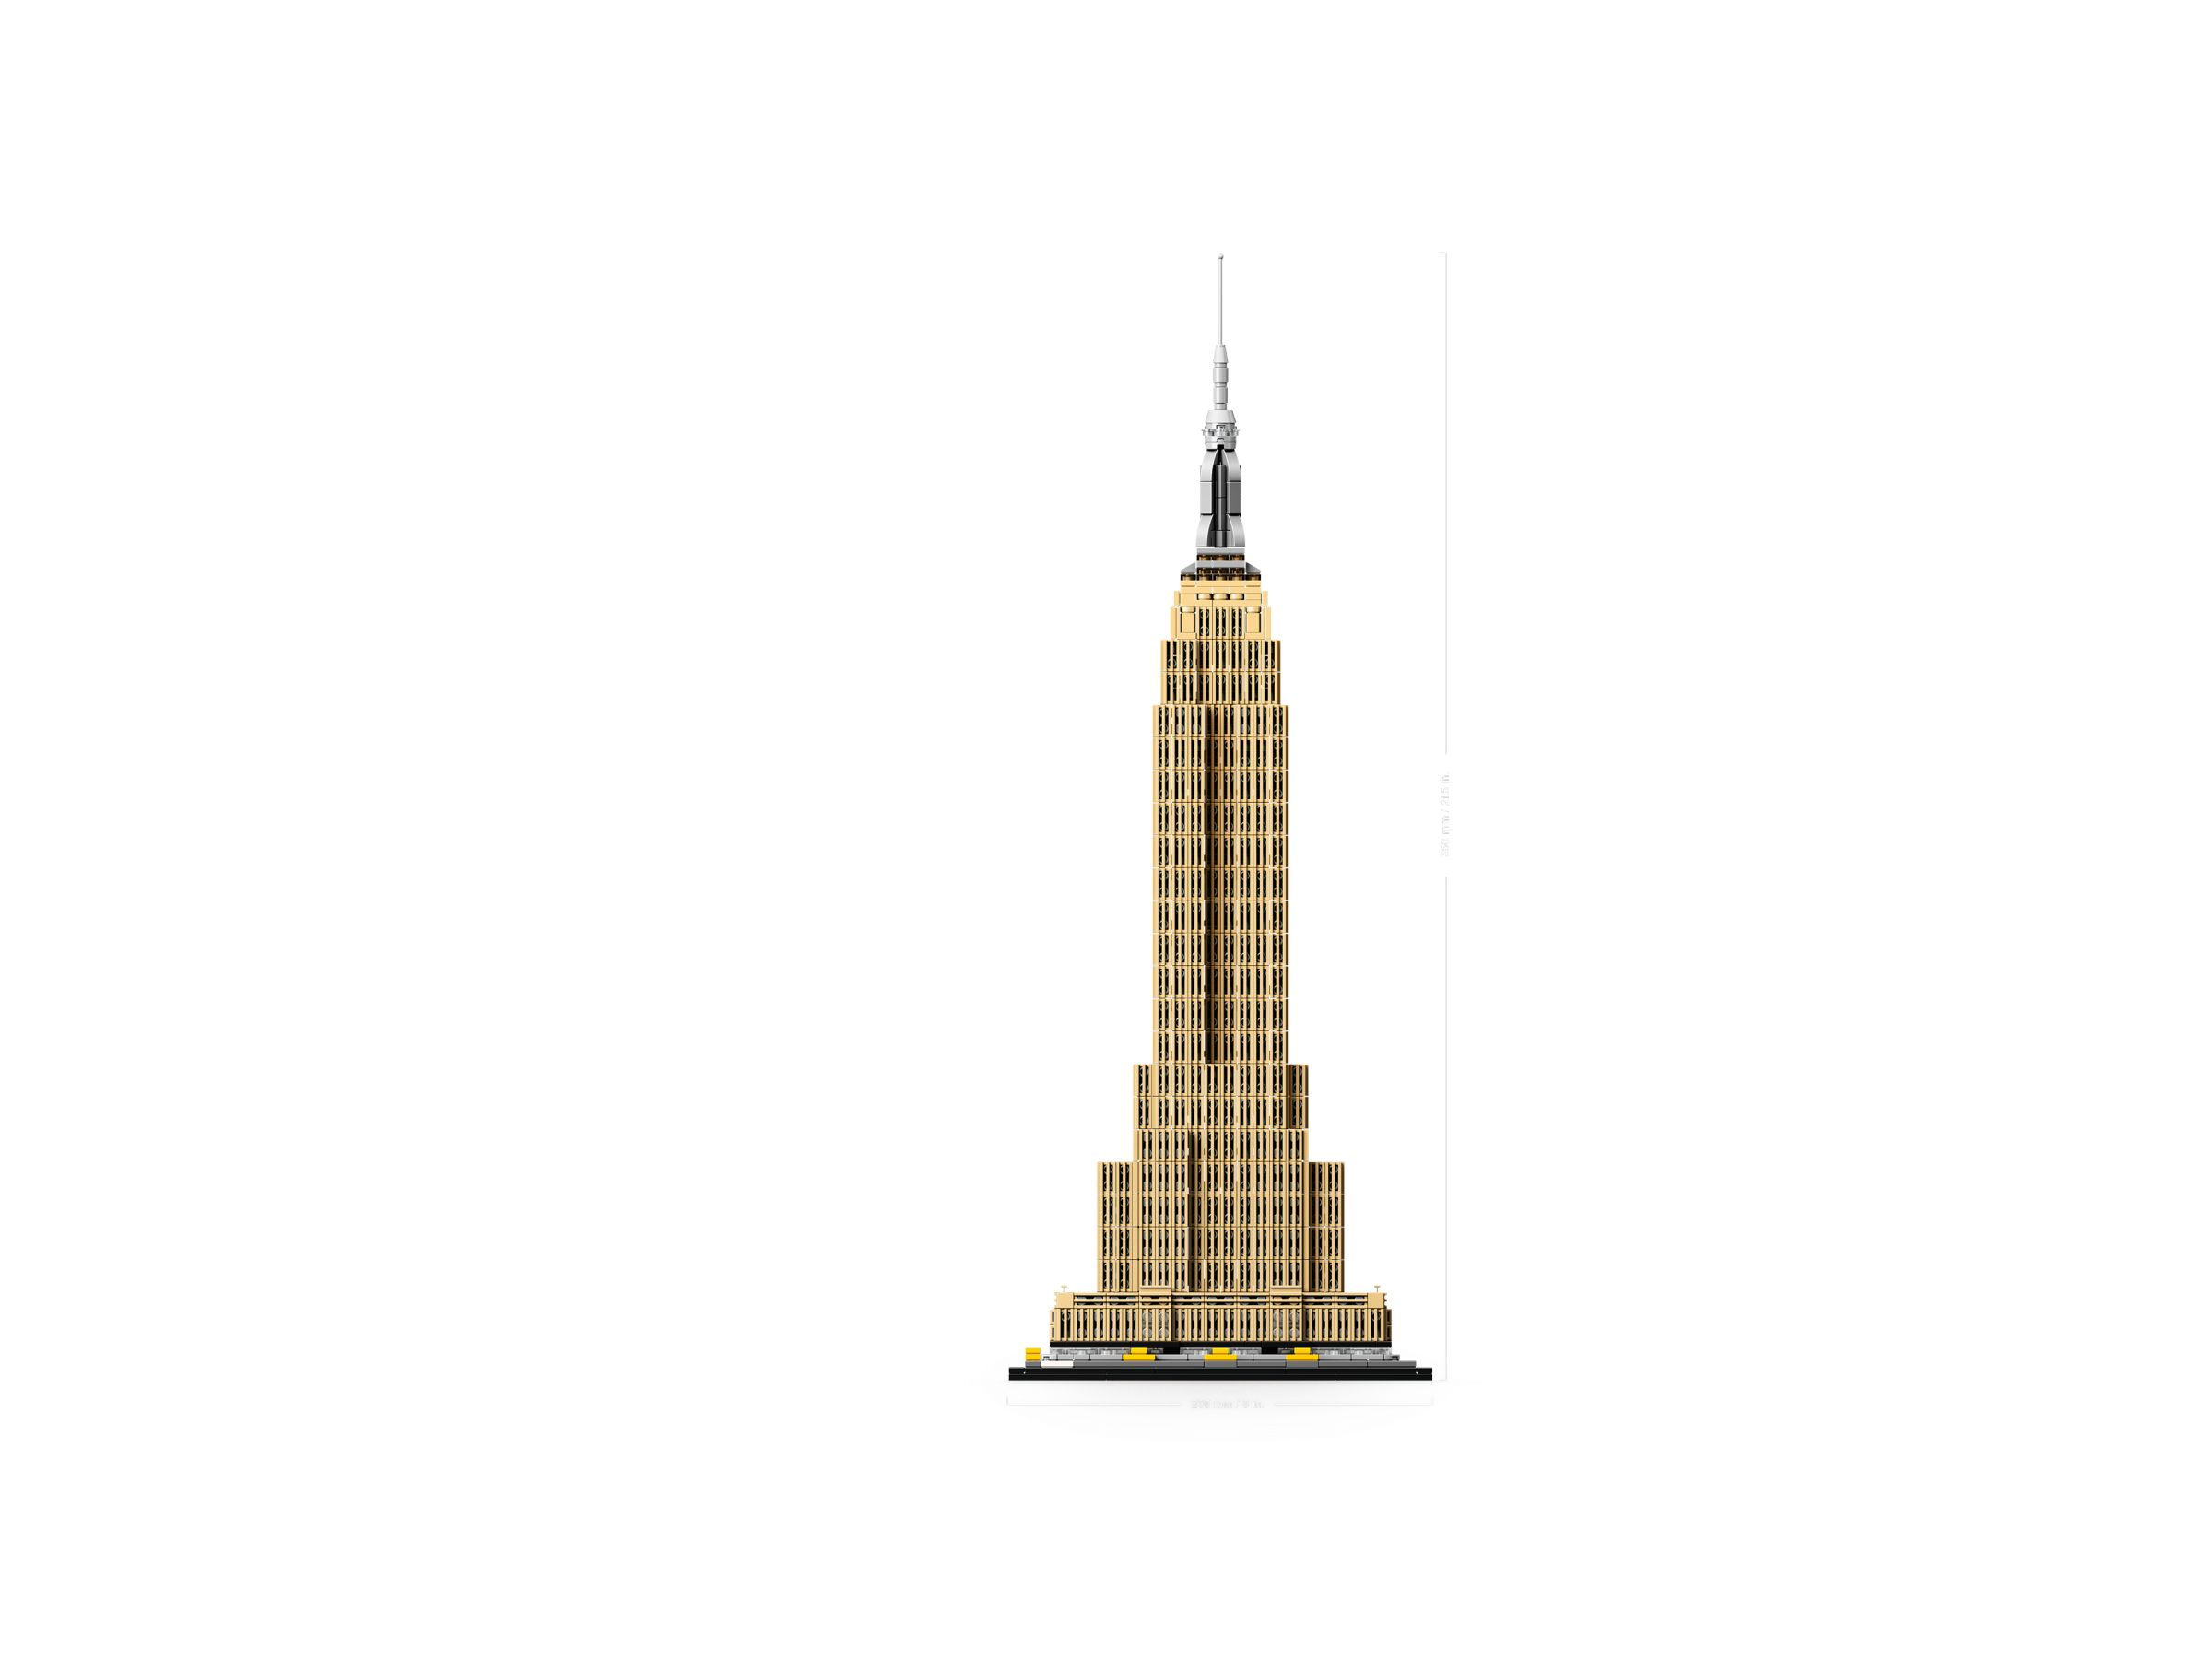 LEGO Architecture 21046 Empire State Building LEGO_21046_alt3.jpg